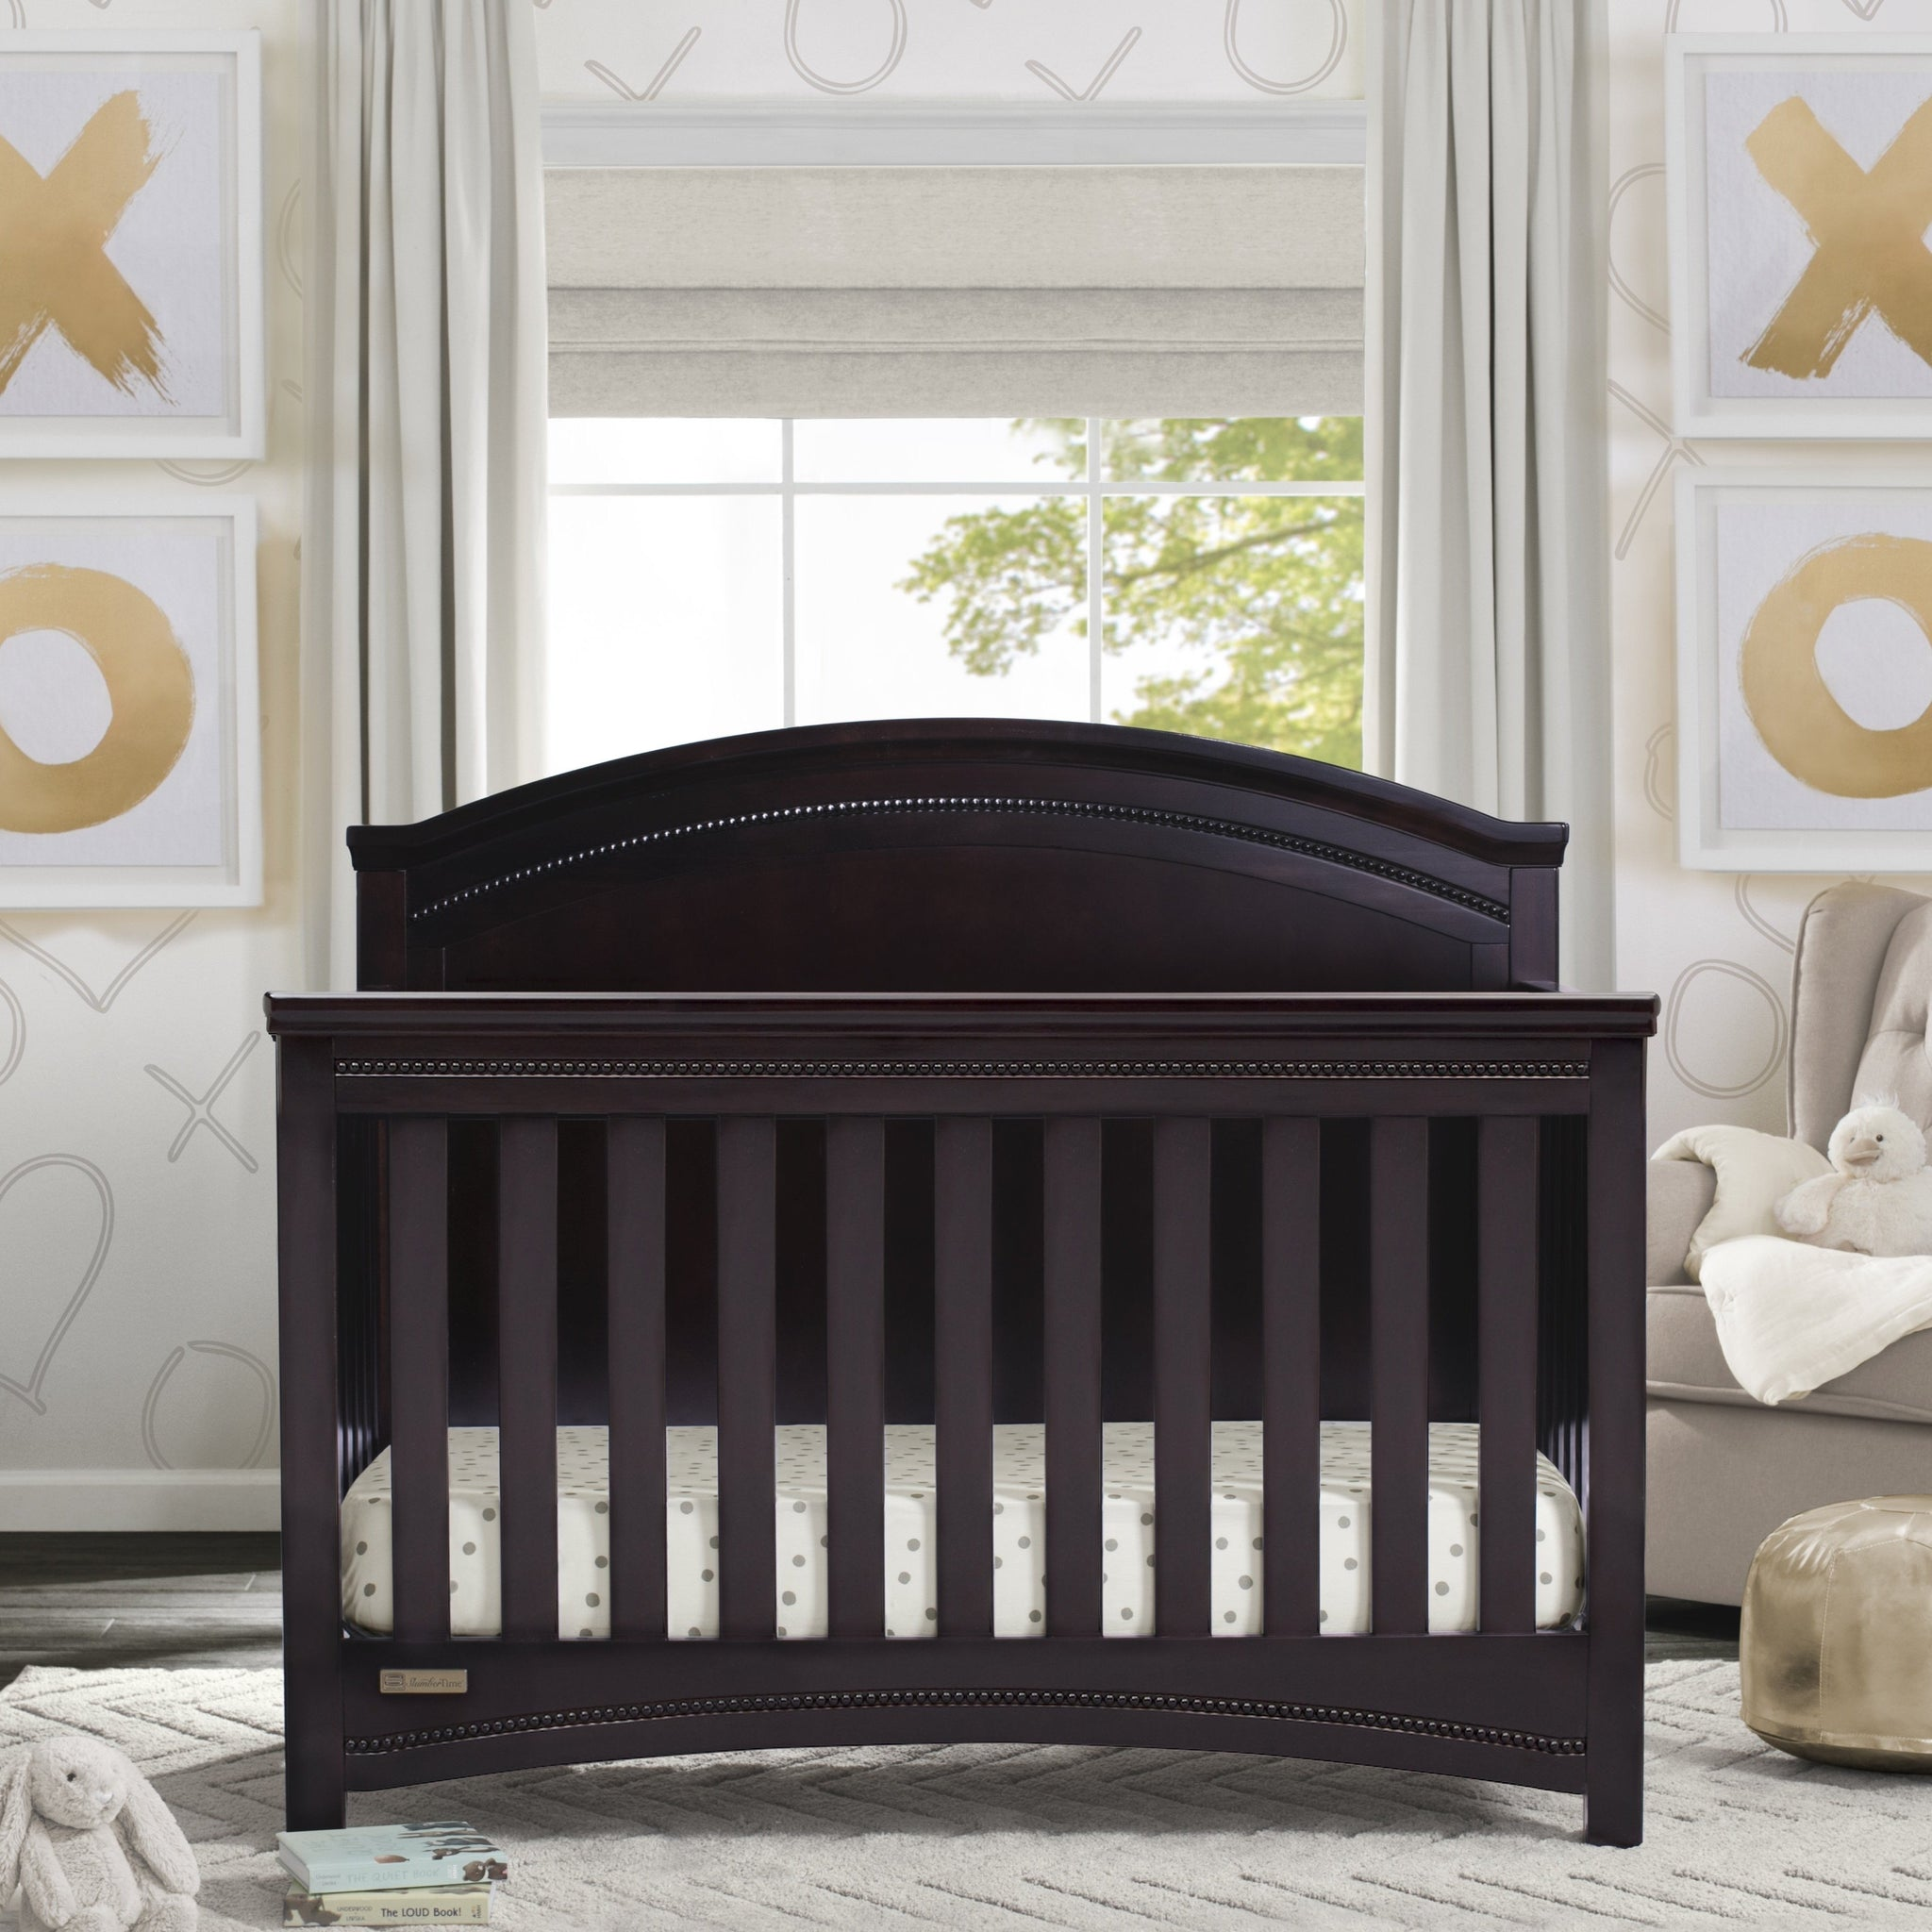 Emma Convertible 4-in-1 Crib 'N' More